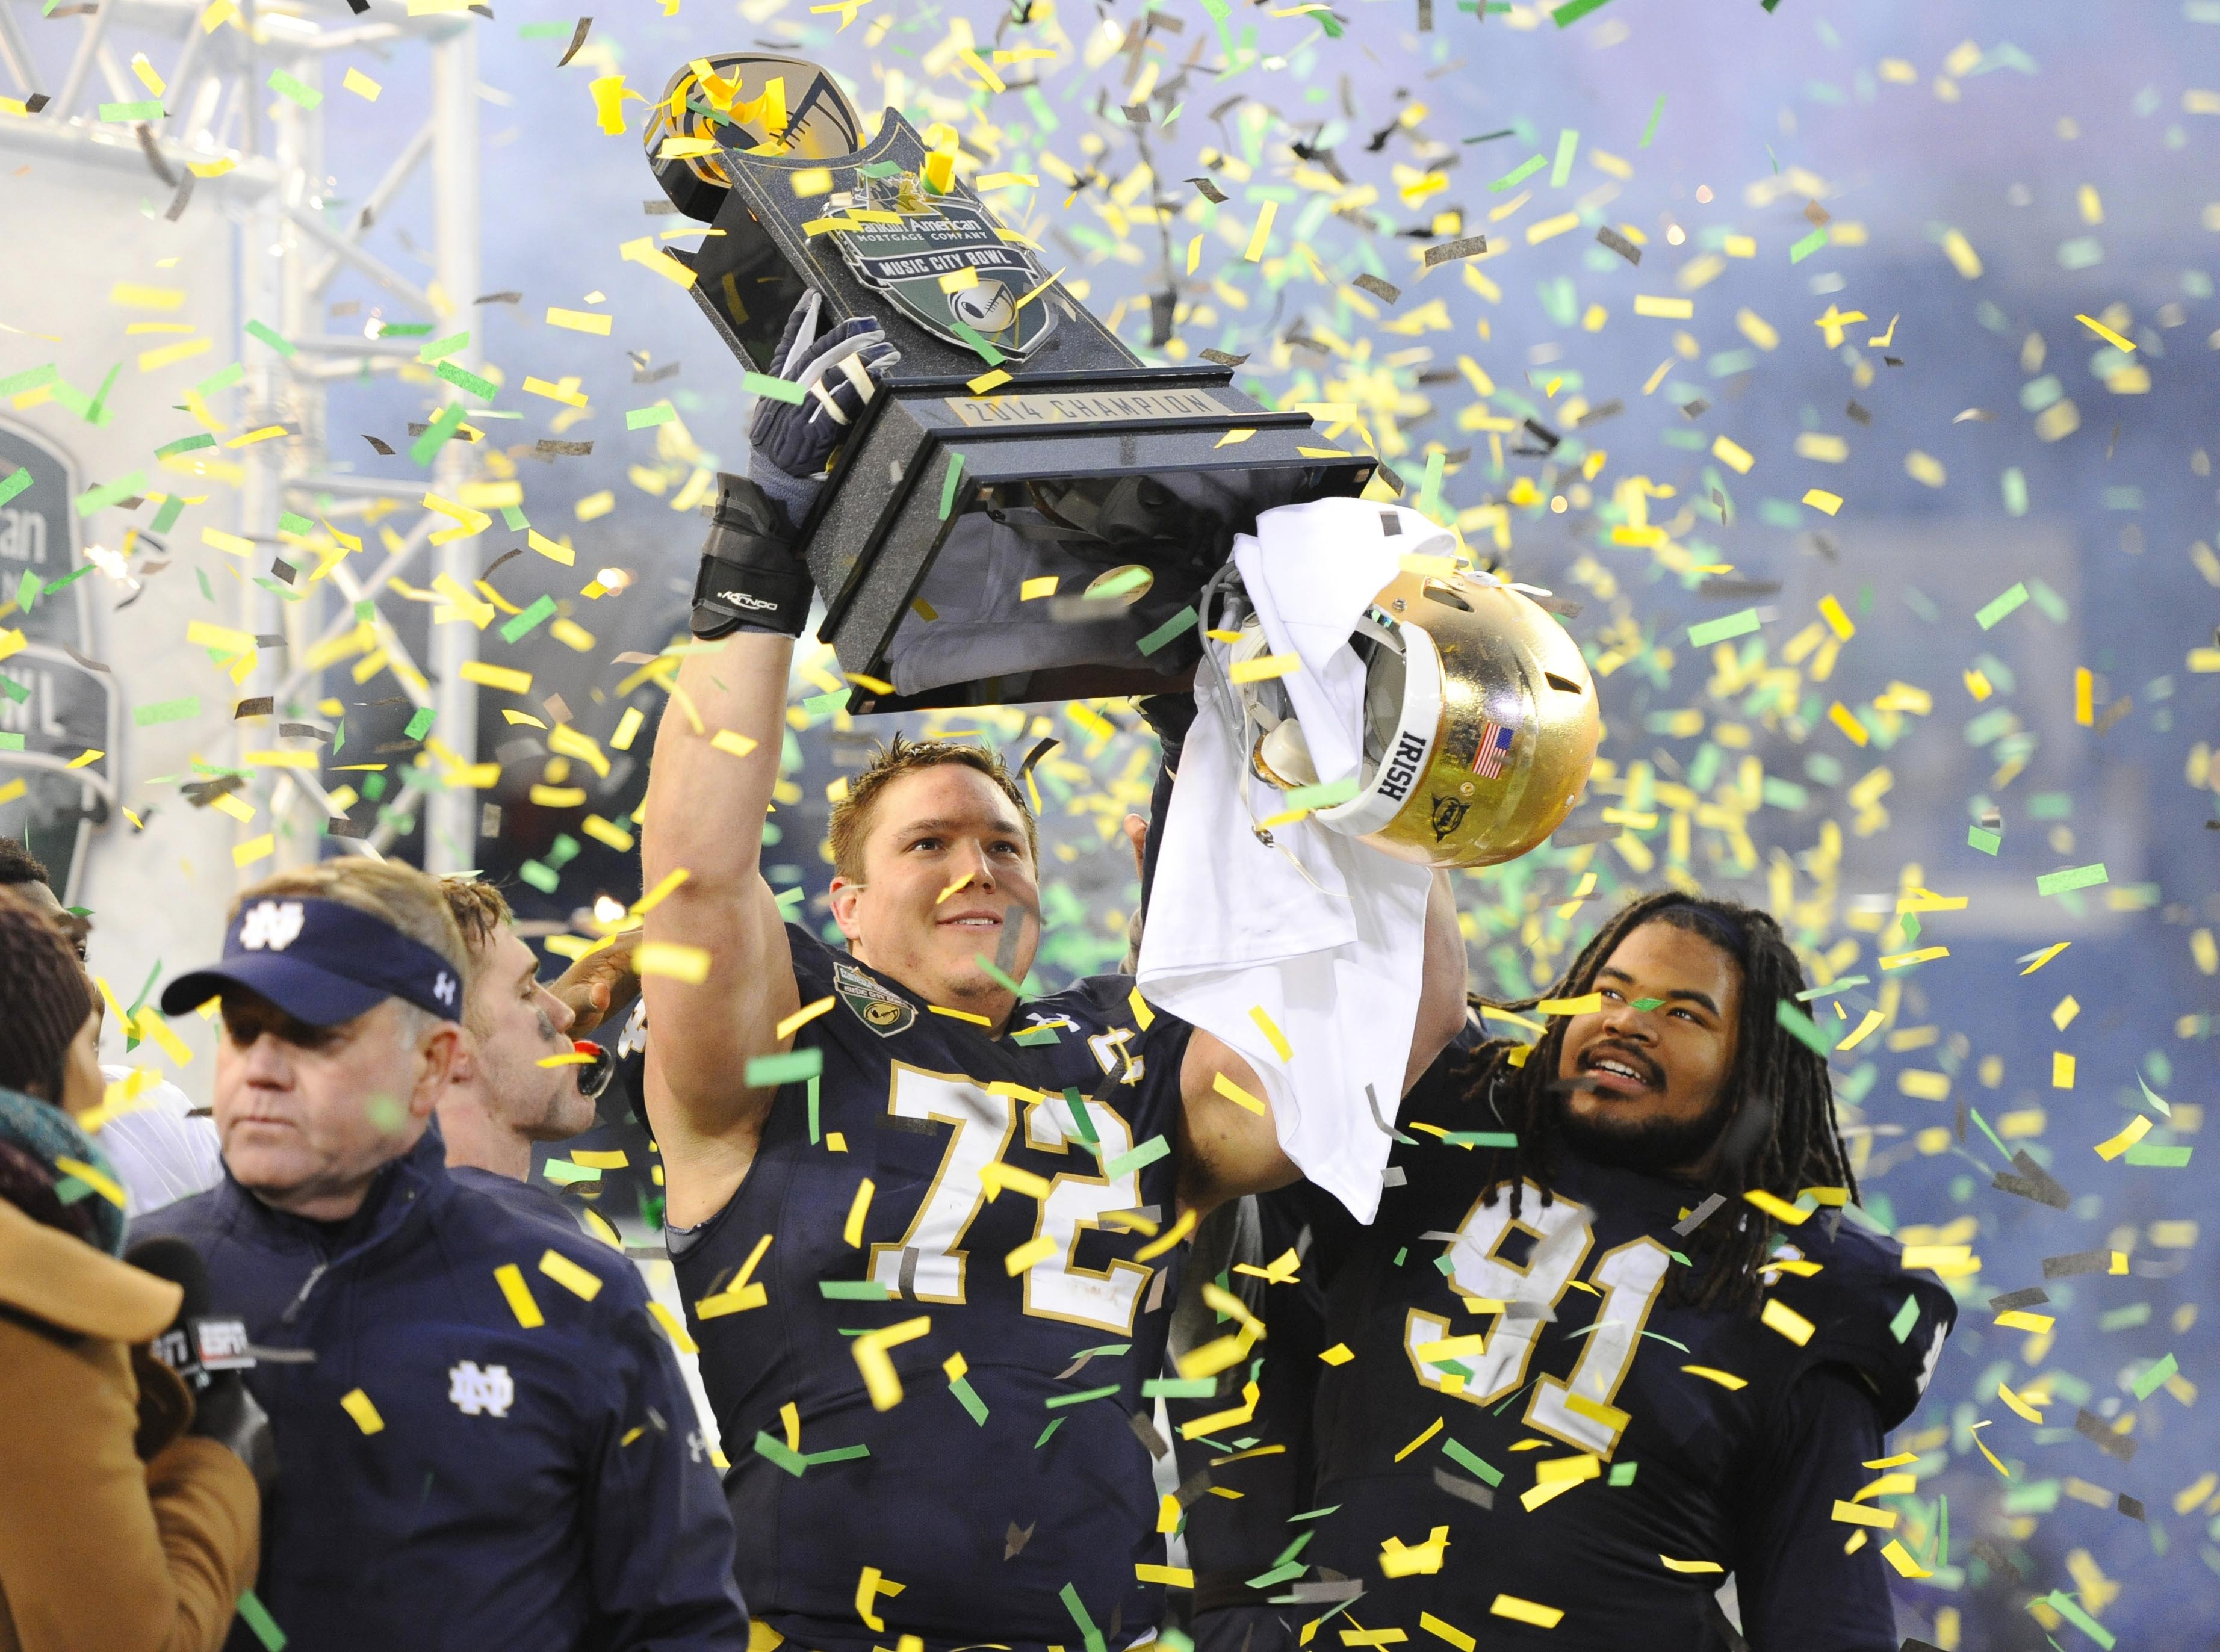 Dec 30, 2014; Nashville, TN, USA; Notre Dame Fighting Irish offensive lineman Nick Martin (72) and defensive lineman Sheldon Day (91) celebrate after winning the game against the LSU Tigers in the Music City Bowl at LP Field. Notre Dame won 31-28. (Christopher Hanewinckel-USA TODAY Sports)